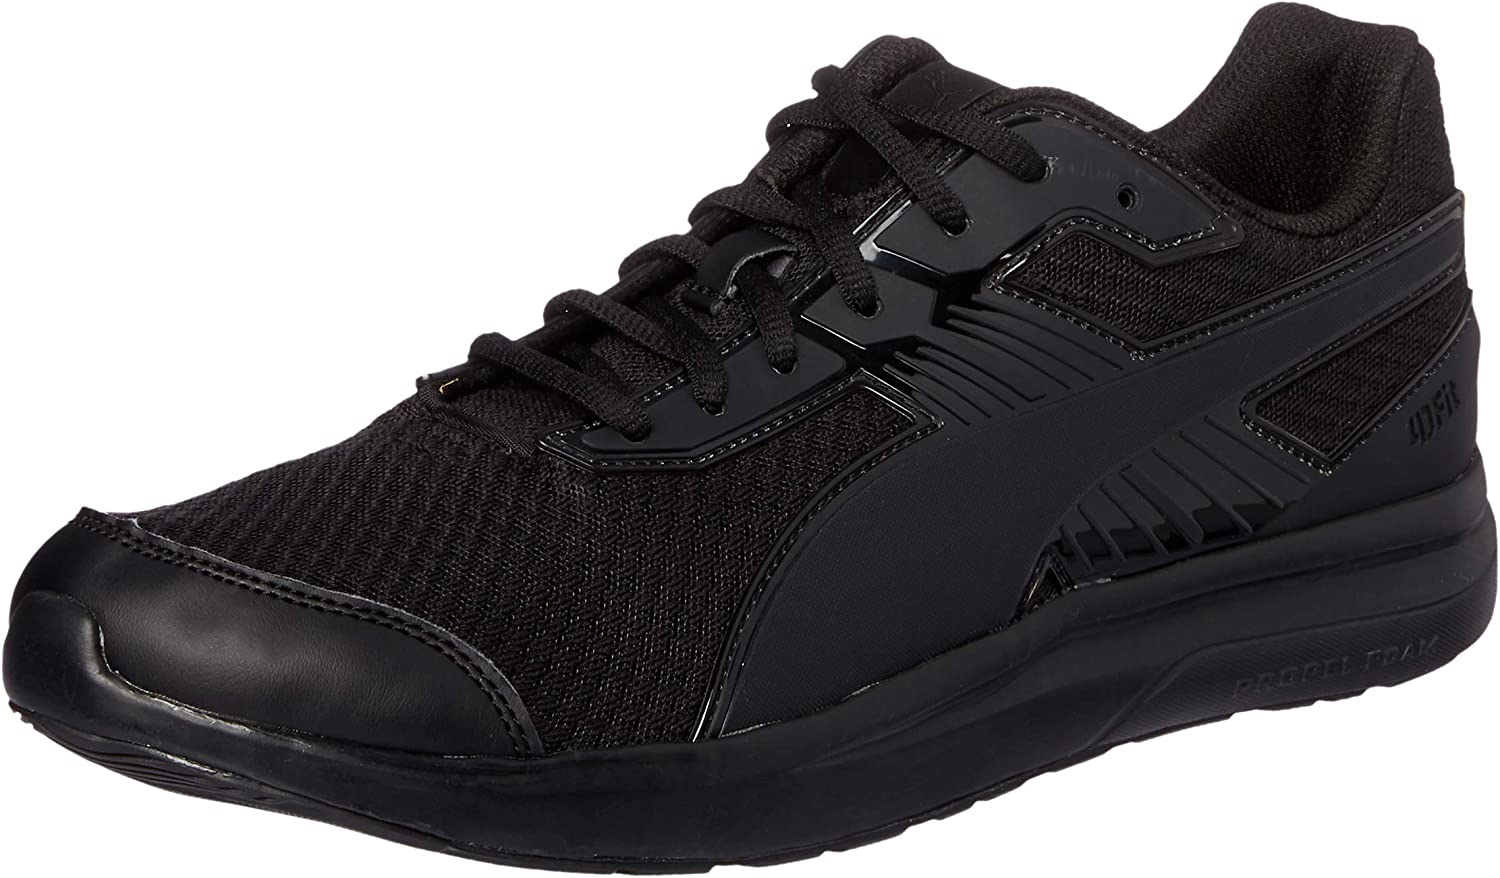 PUMA Unisex Adults/' Escaper Pro Low-Top Sneakers